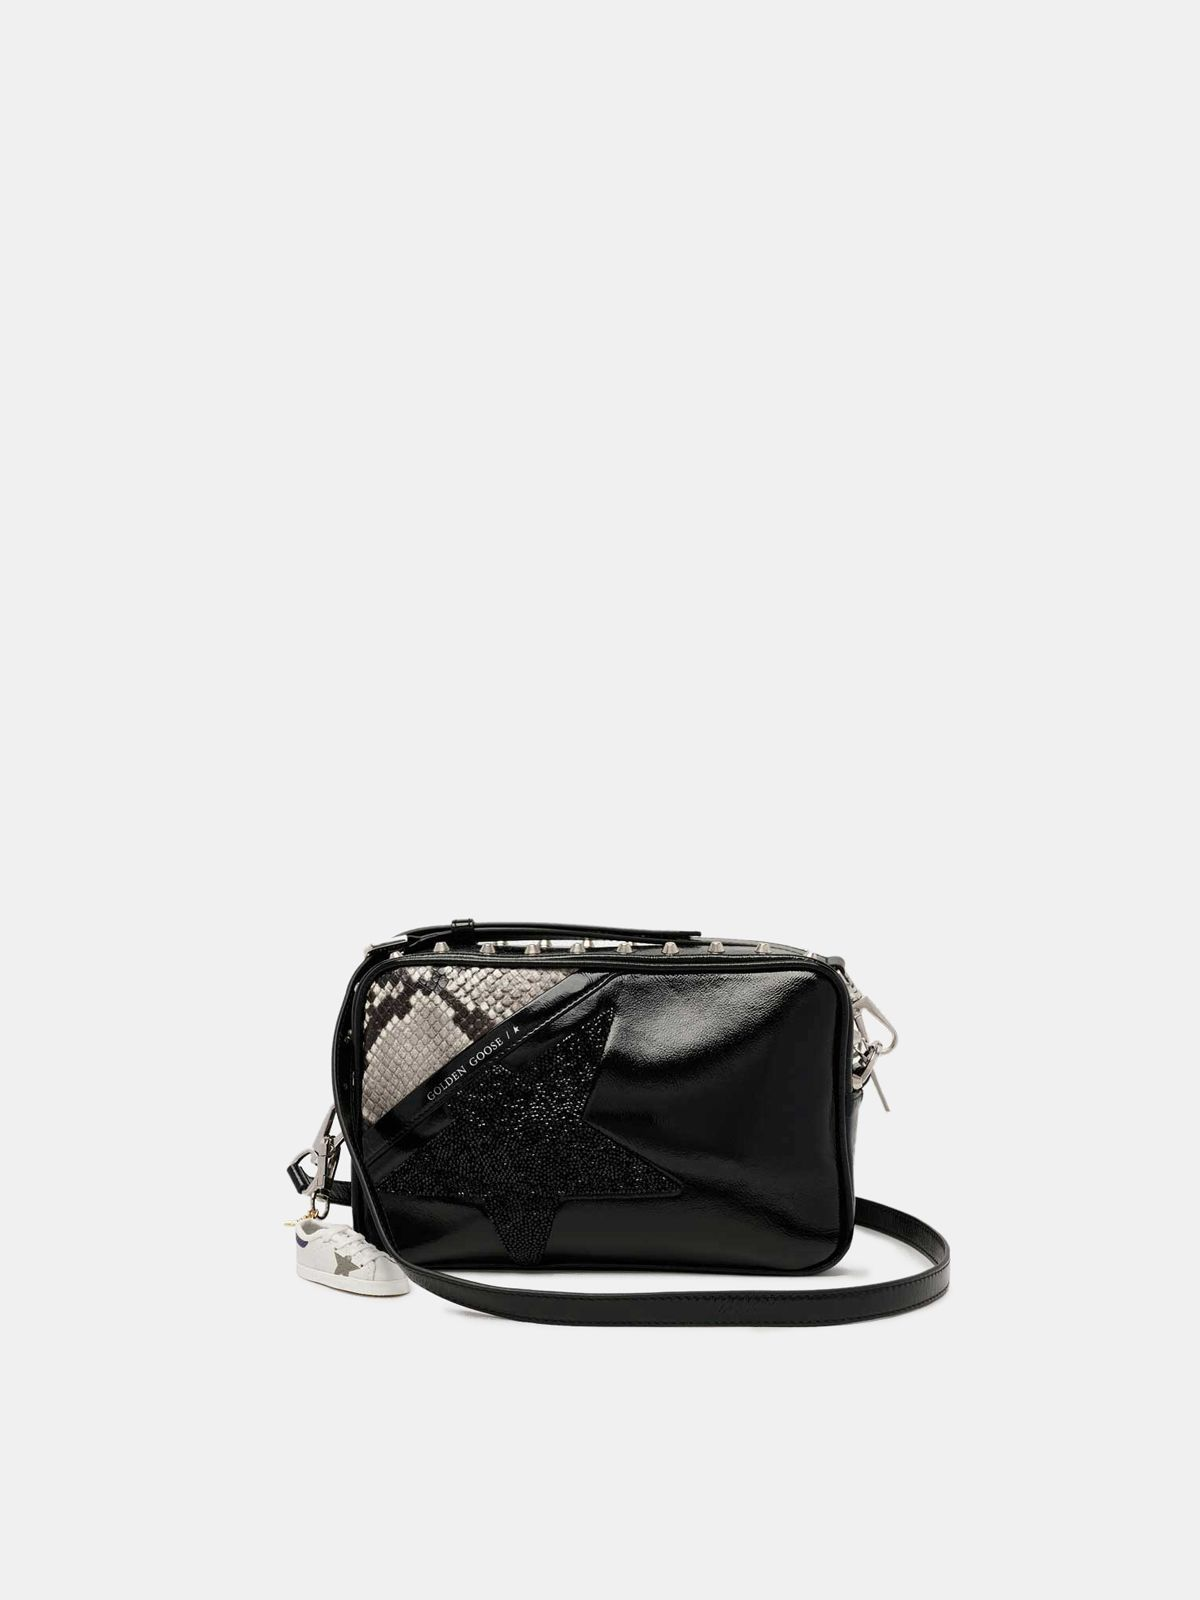 Golden Goose - Borsa Star Bag con borchie cristalli e stampa pitonata in